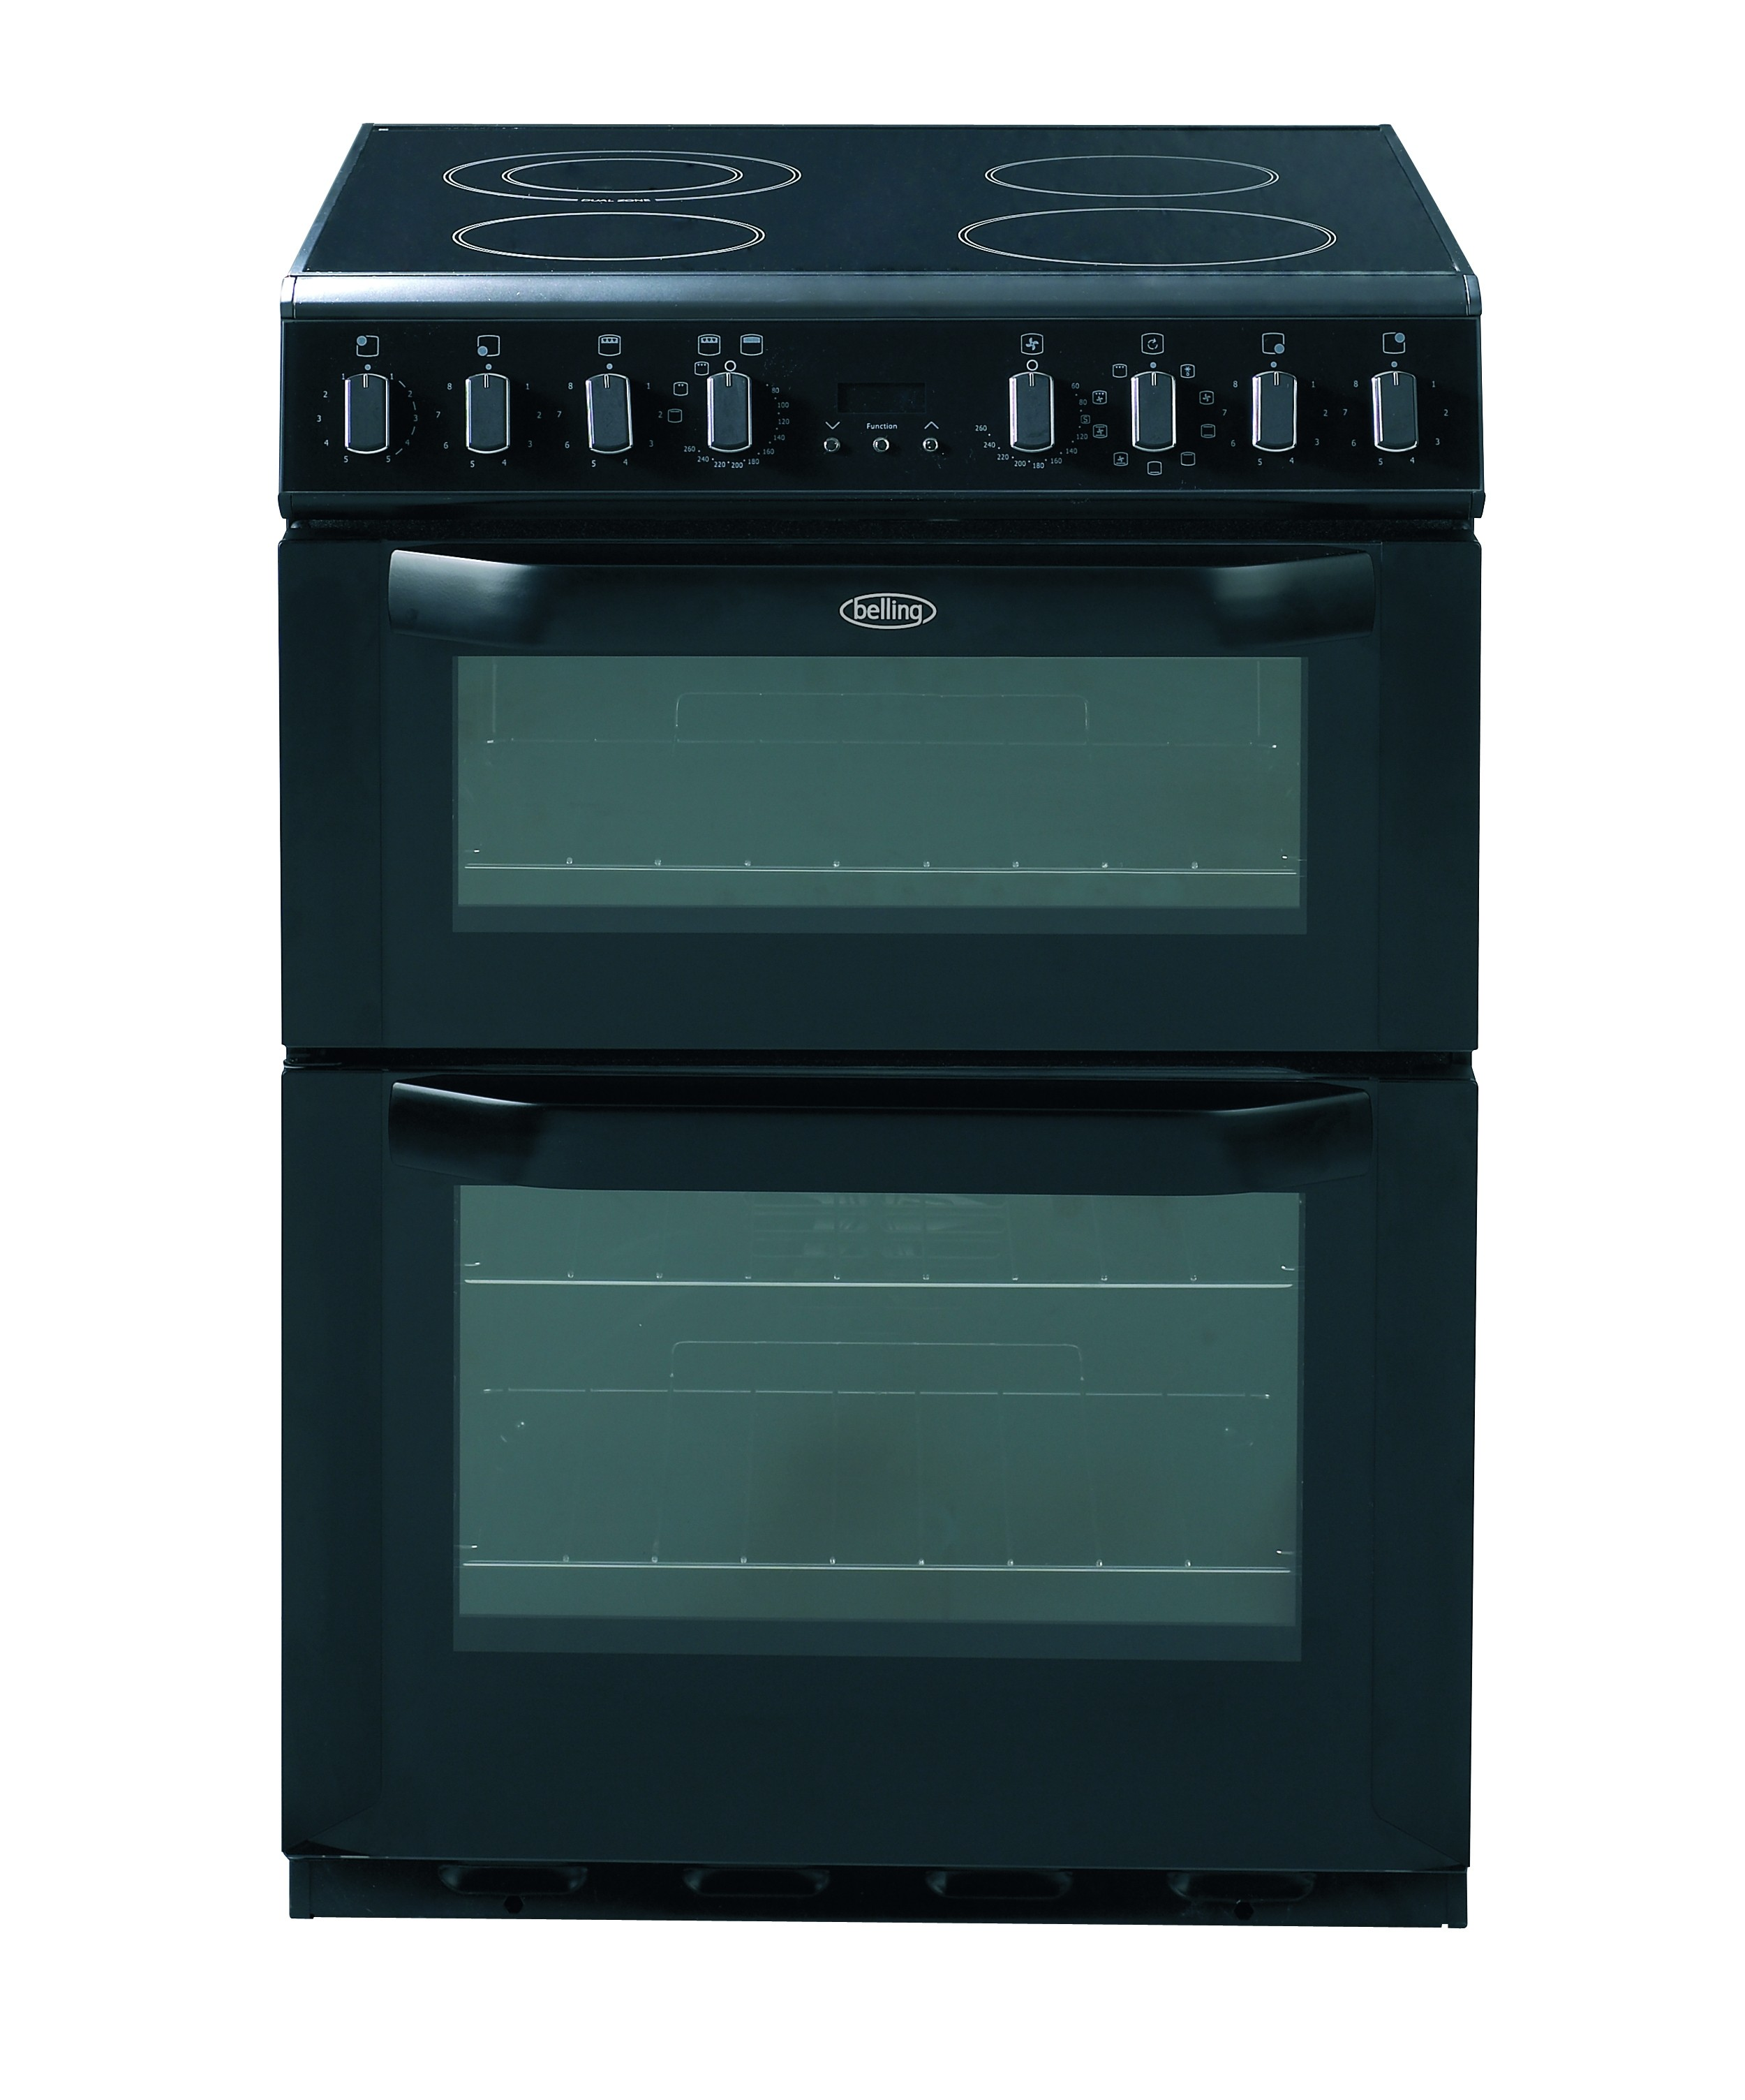 Kitchen Doors Uckfield: Belling FSE60MF Black Electric Double Oven, 60cm, A Energy